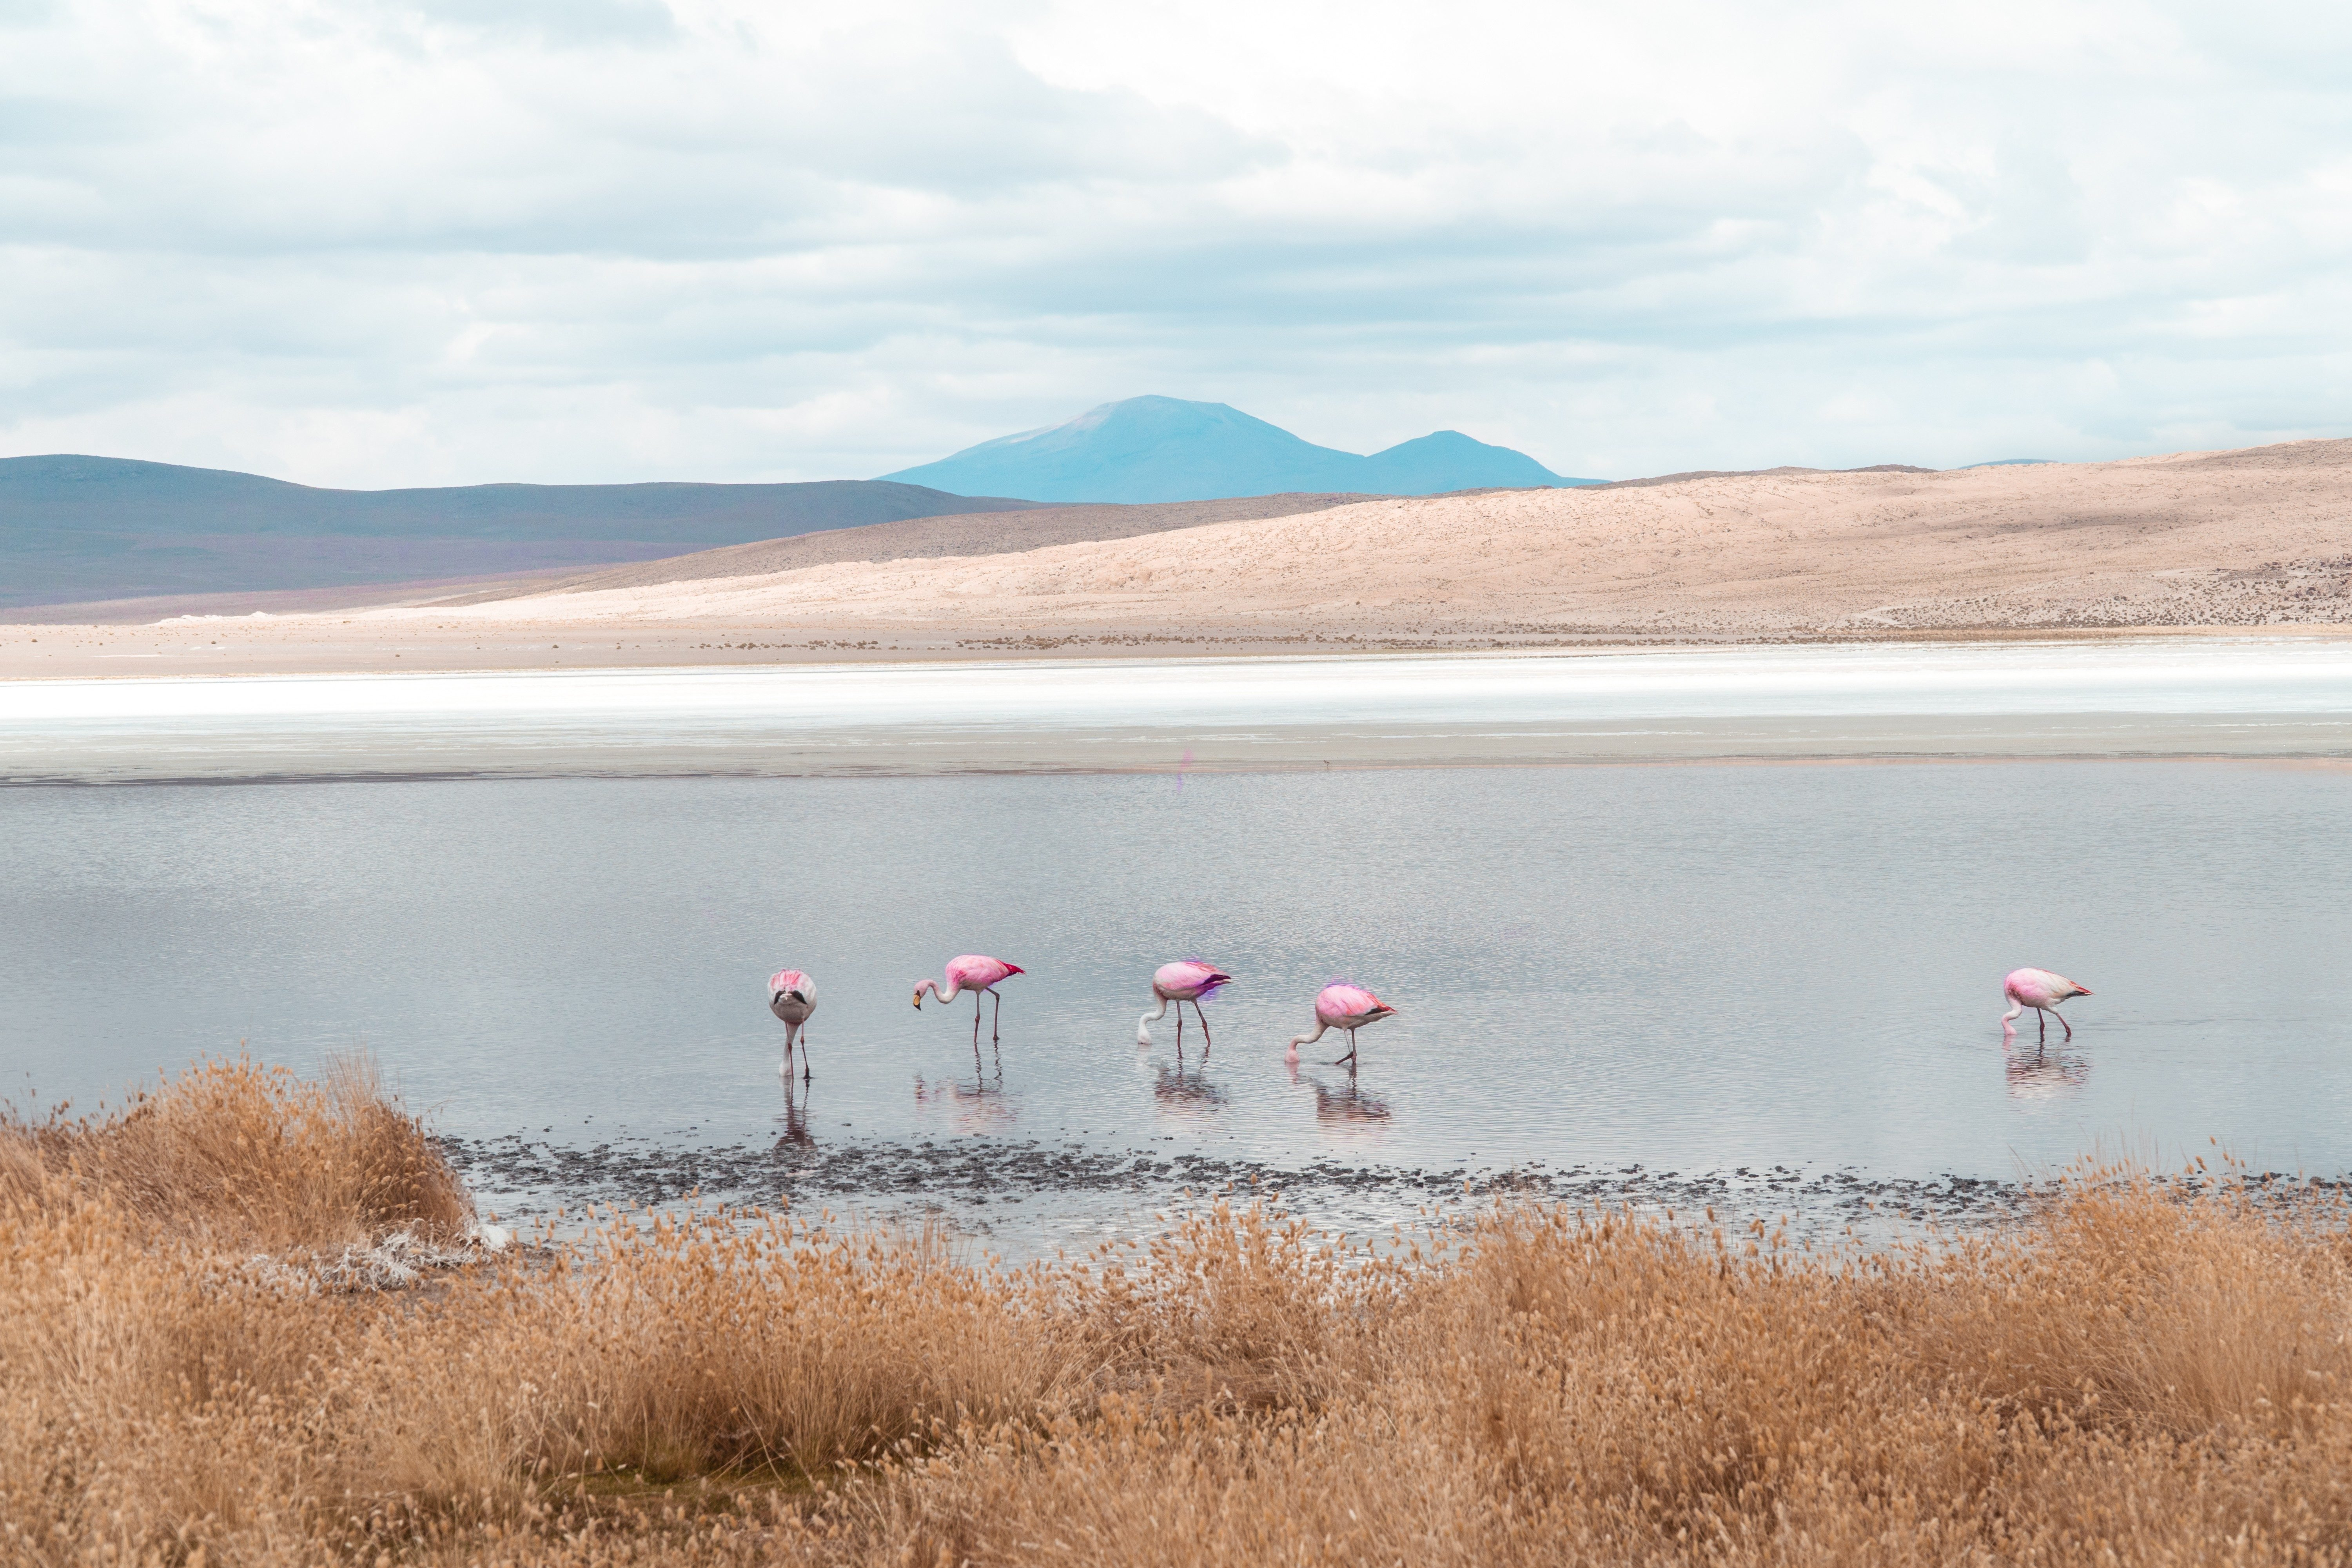 Group of beautiful pink flamingos walking and feeding in lake. Natural wildlife shot in Uyuni Salt Flats, Bolivia. Animal with water and mountain landscape background. Wild animal in nature.